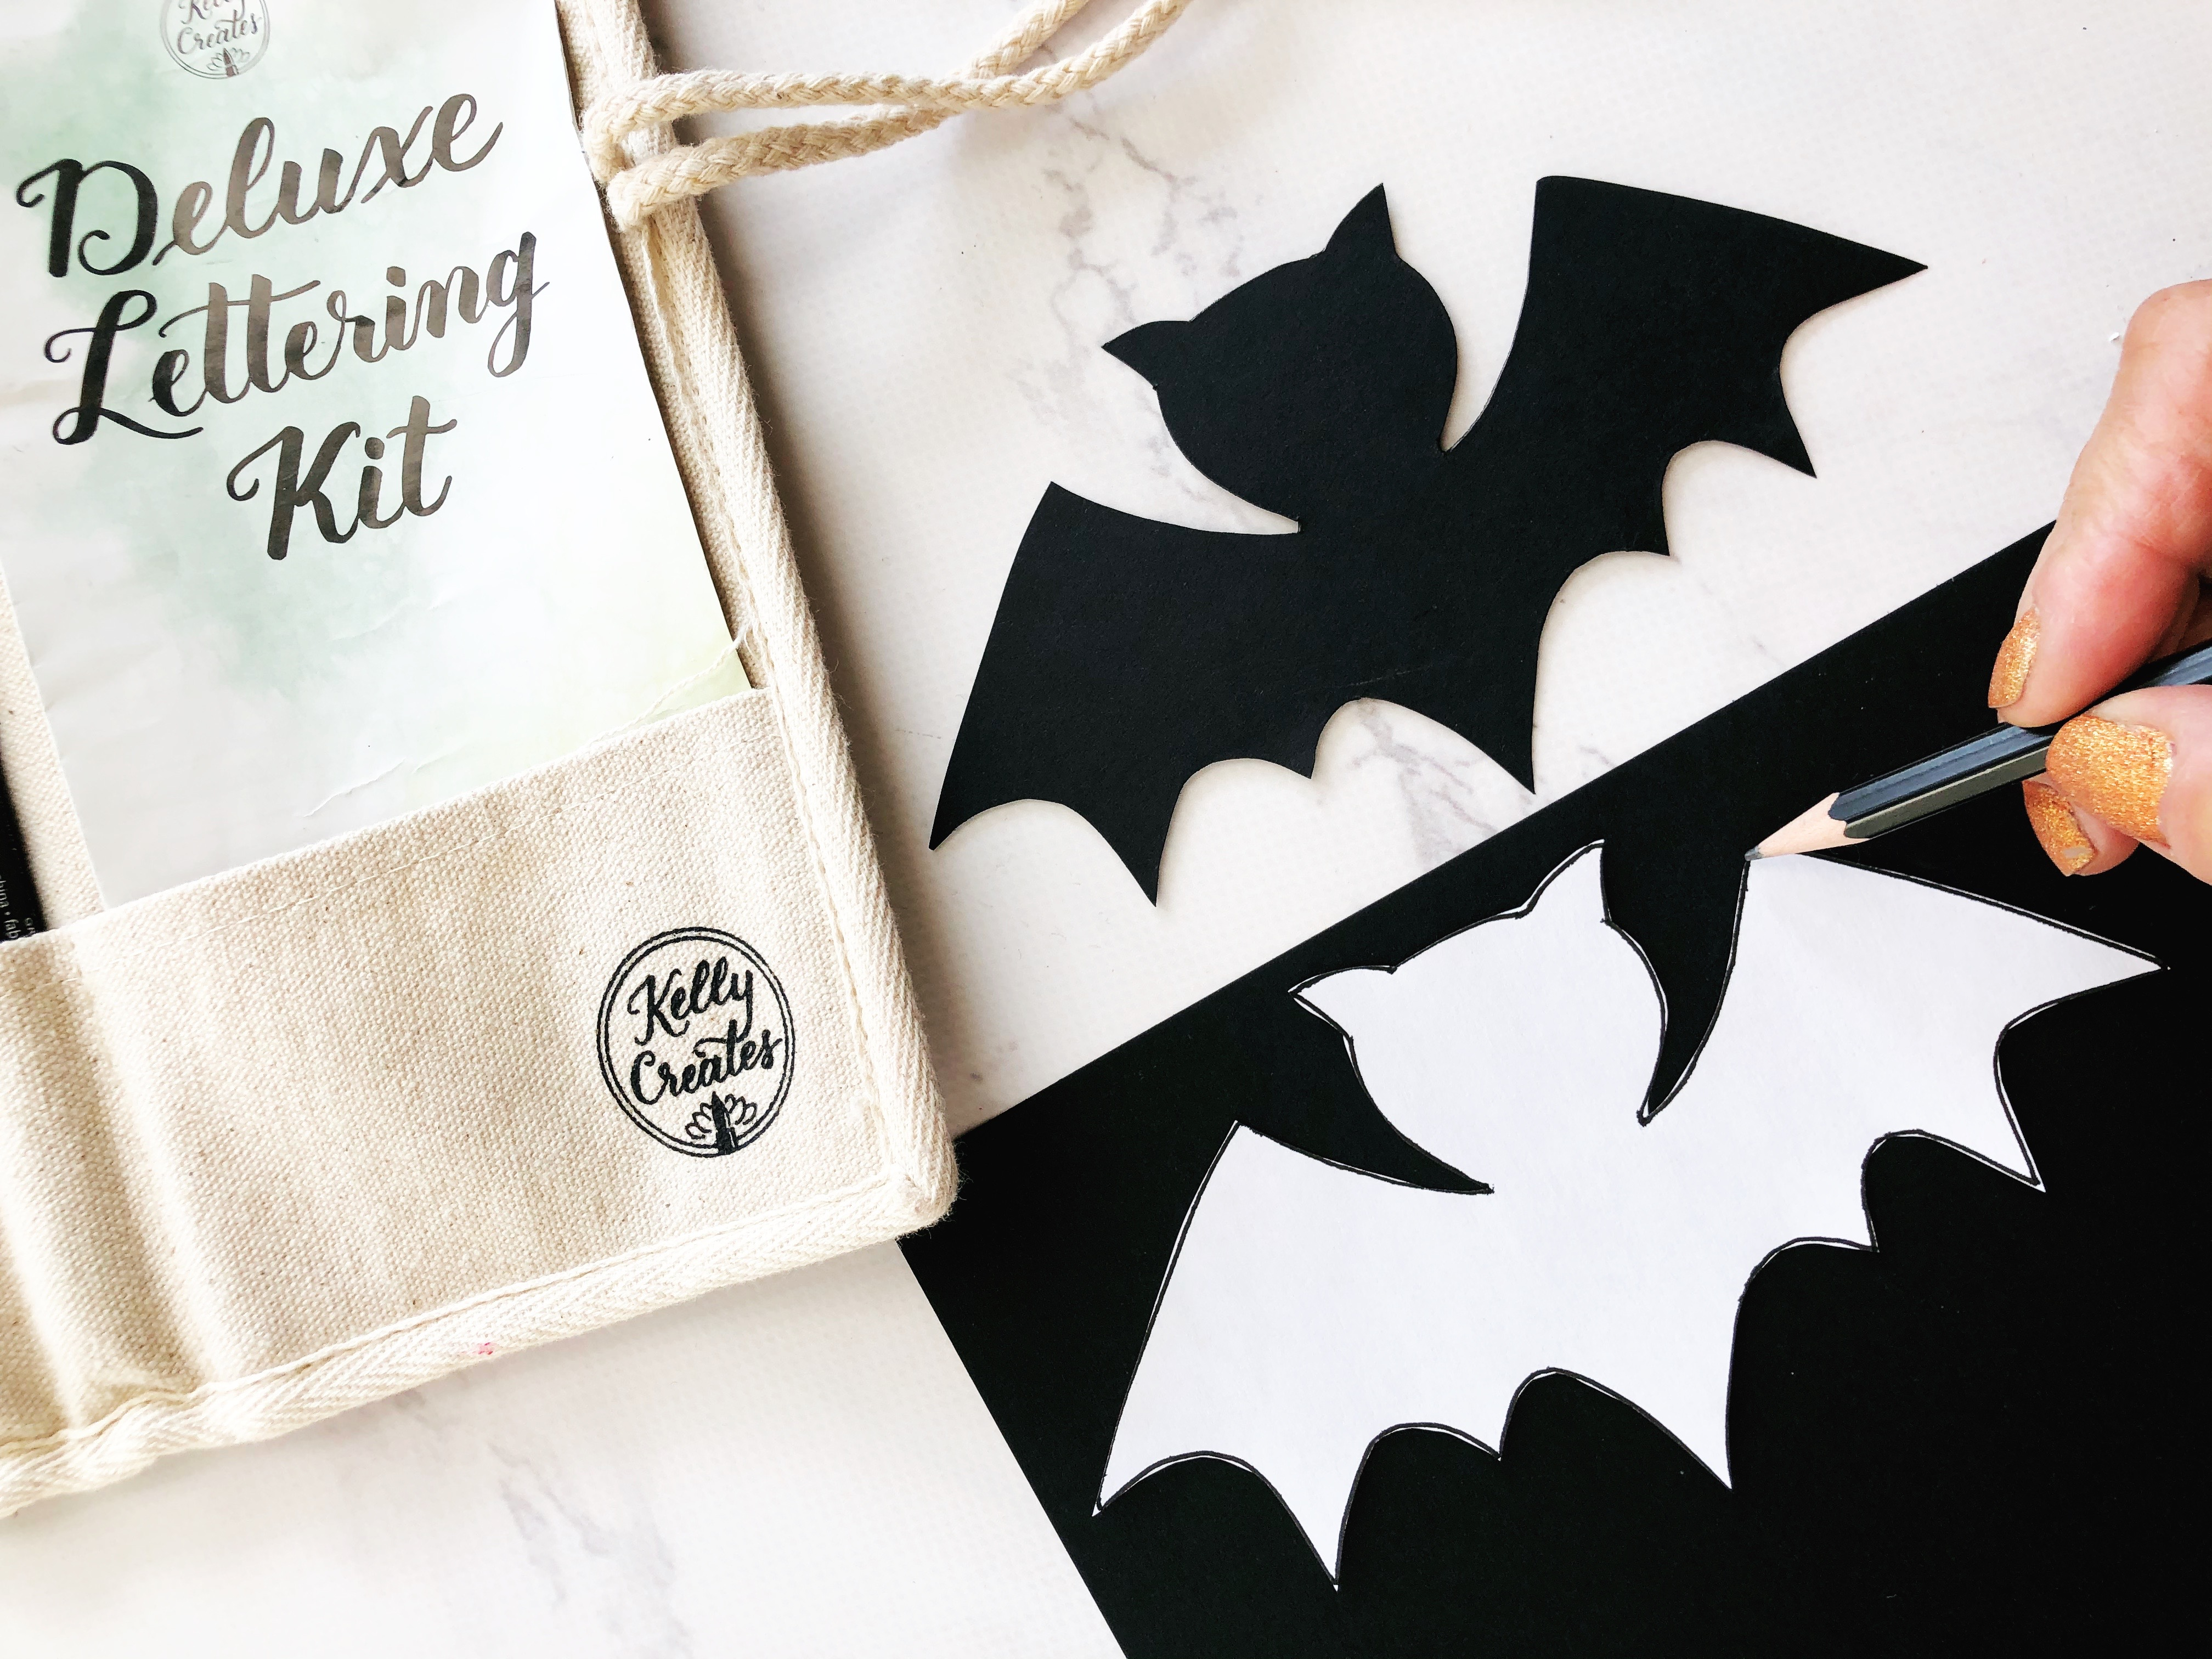 Tracing a bat template onto Kelly Creates black cardstock.